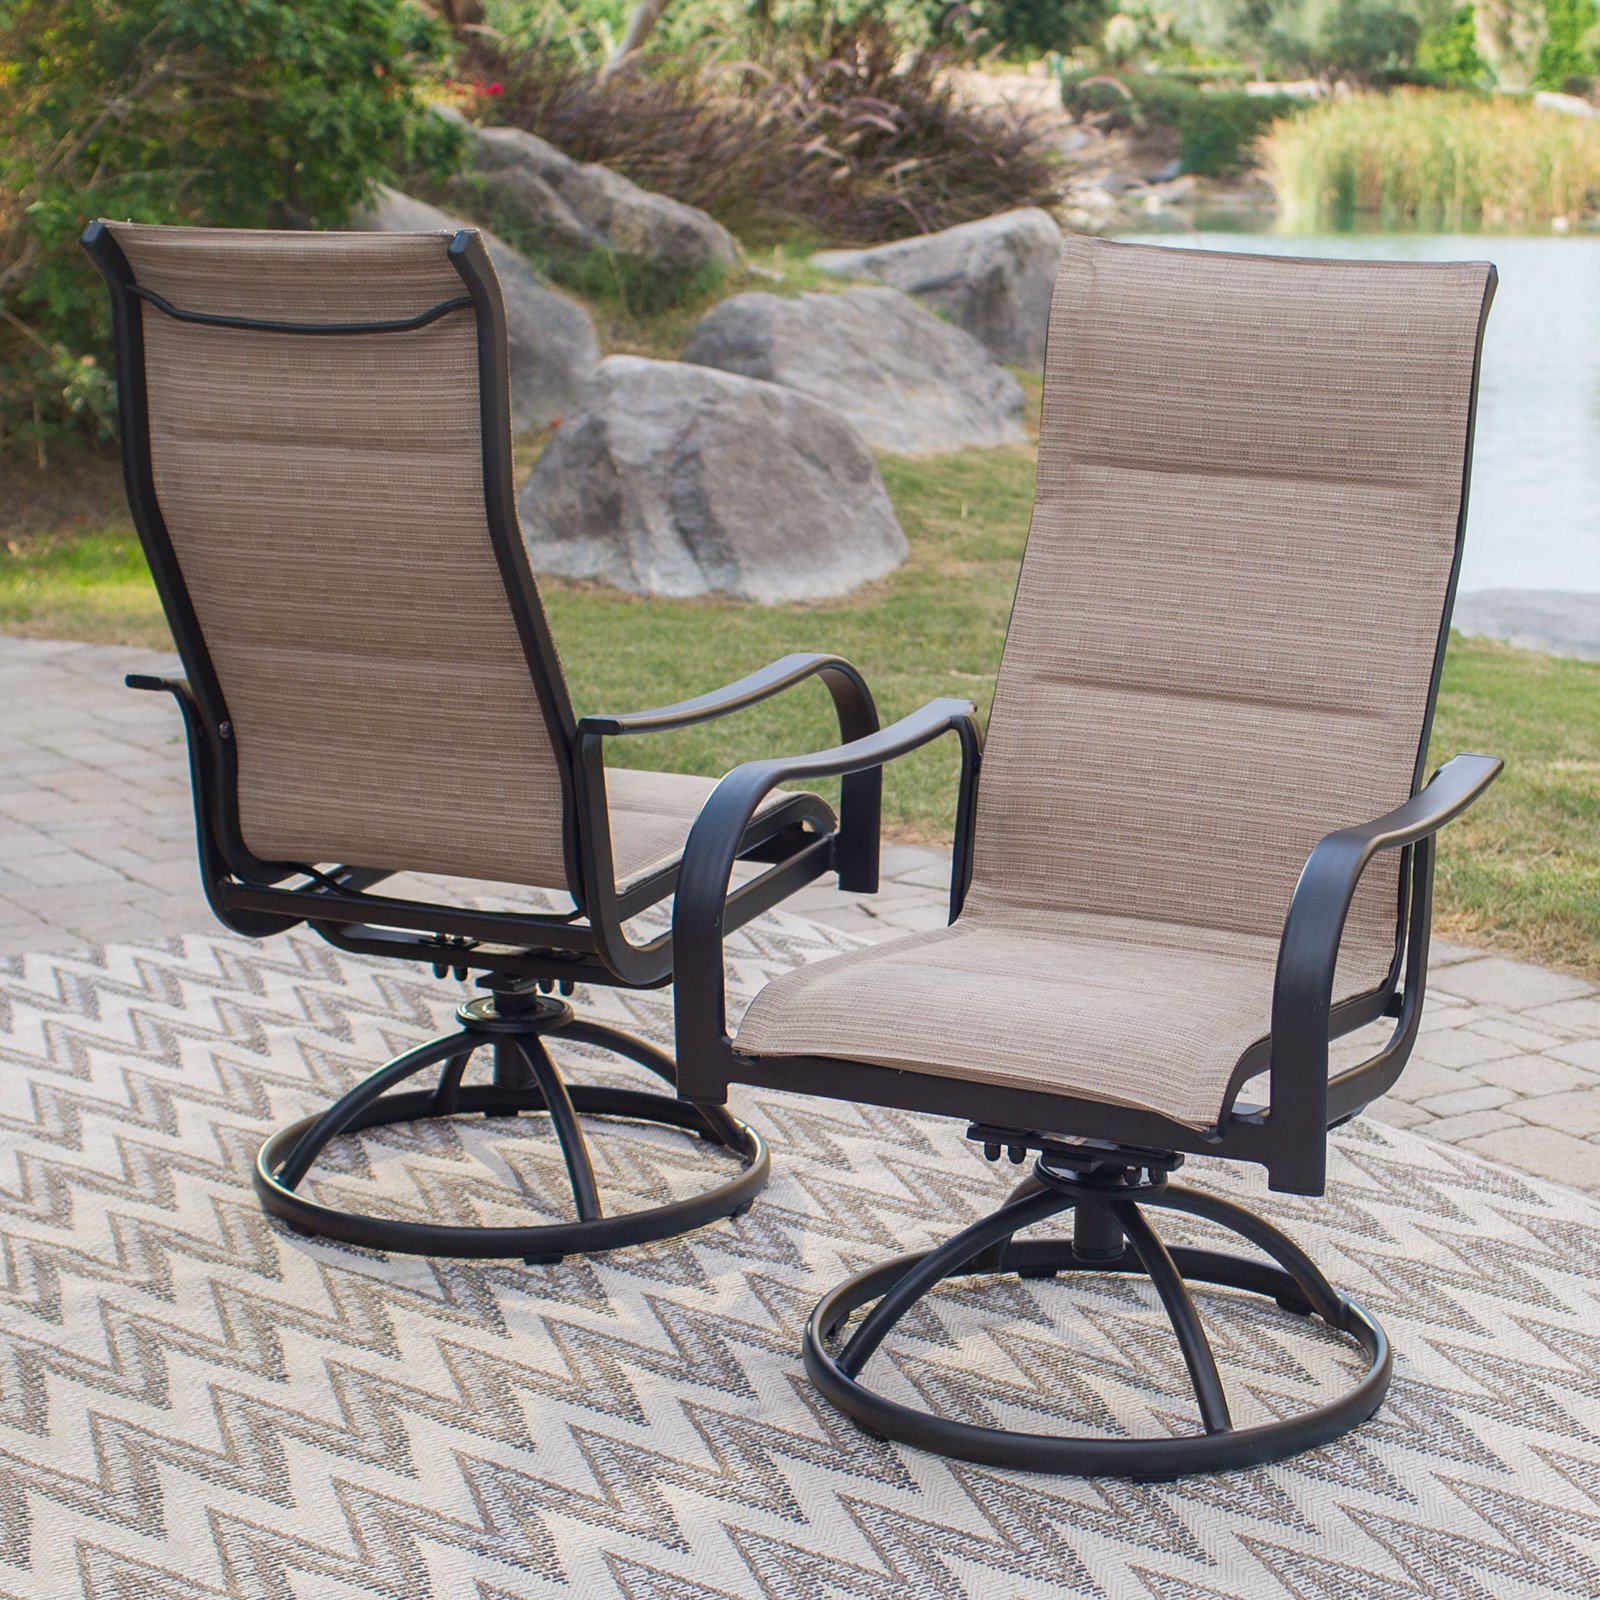 Coral Coast Wimberley Padded Sling Swivel/Rocker Dining Chairs - Set of 2 - Walmart.com & Coral Coast Wimberley Padded Sling Swivel/Rocker Dining Chairs - Set ...